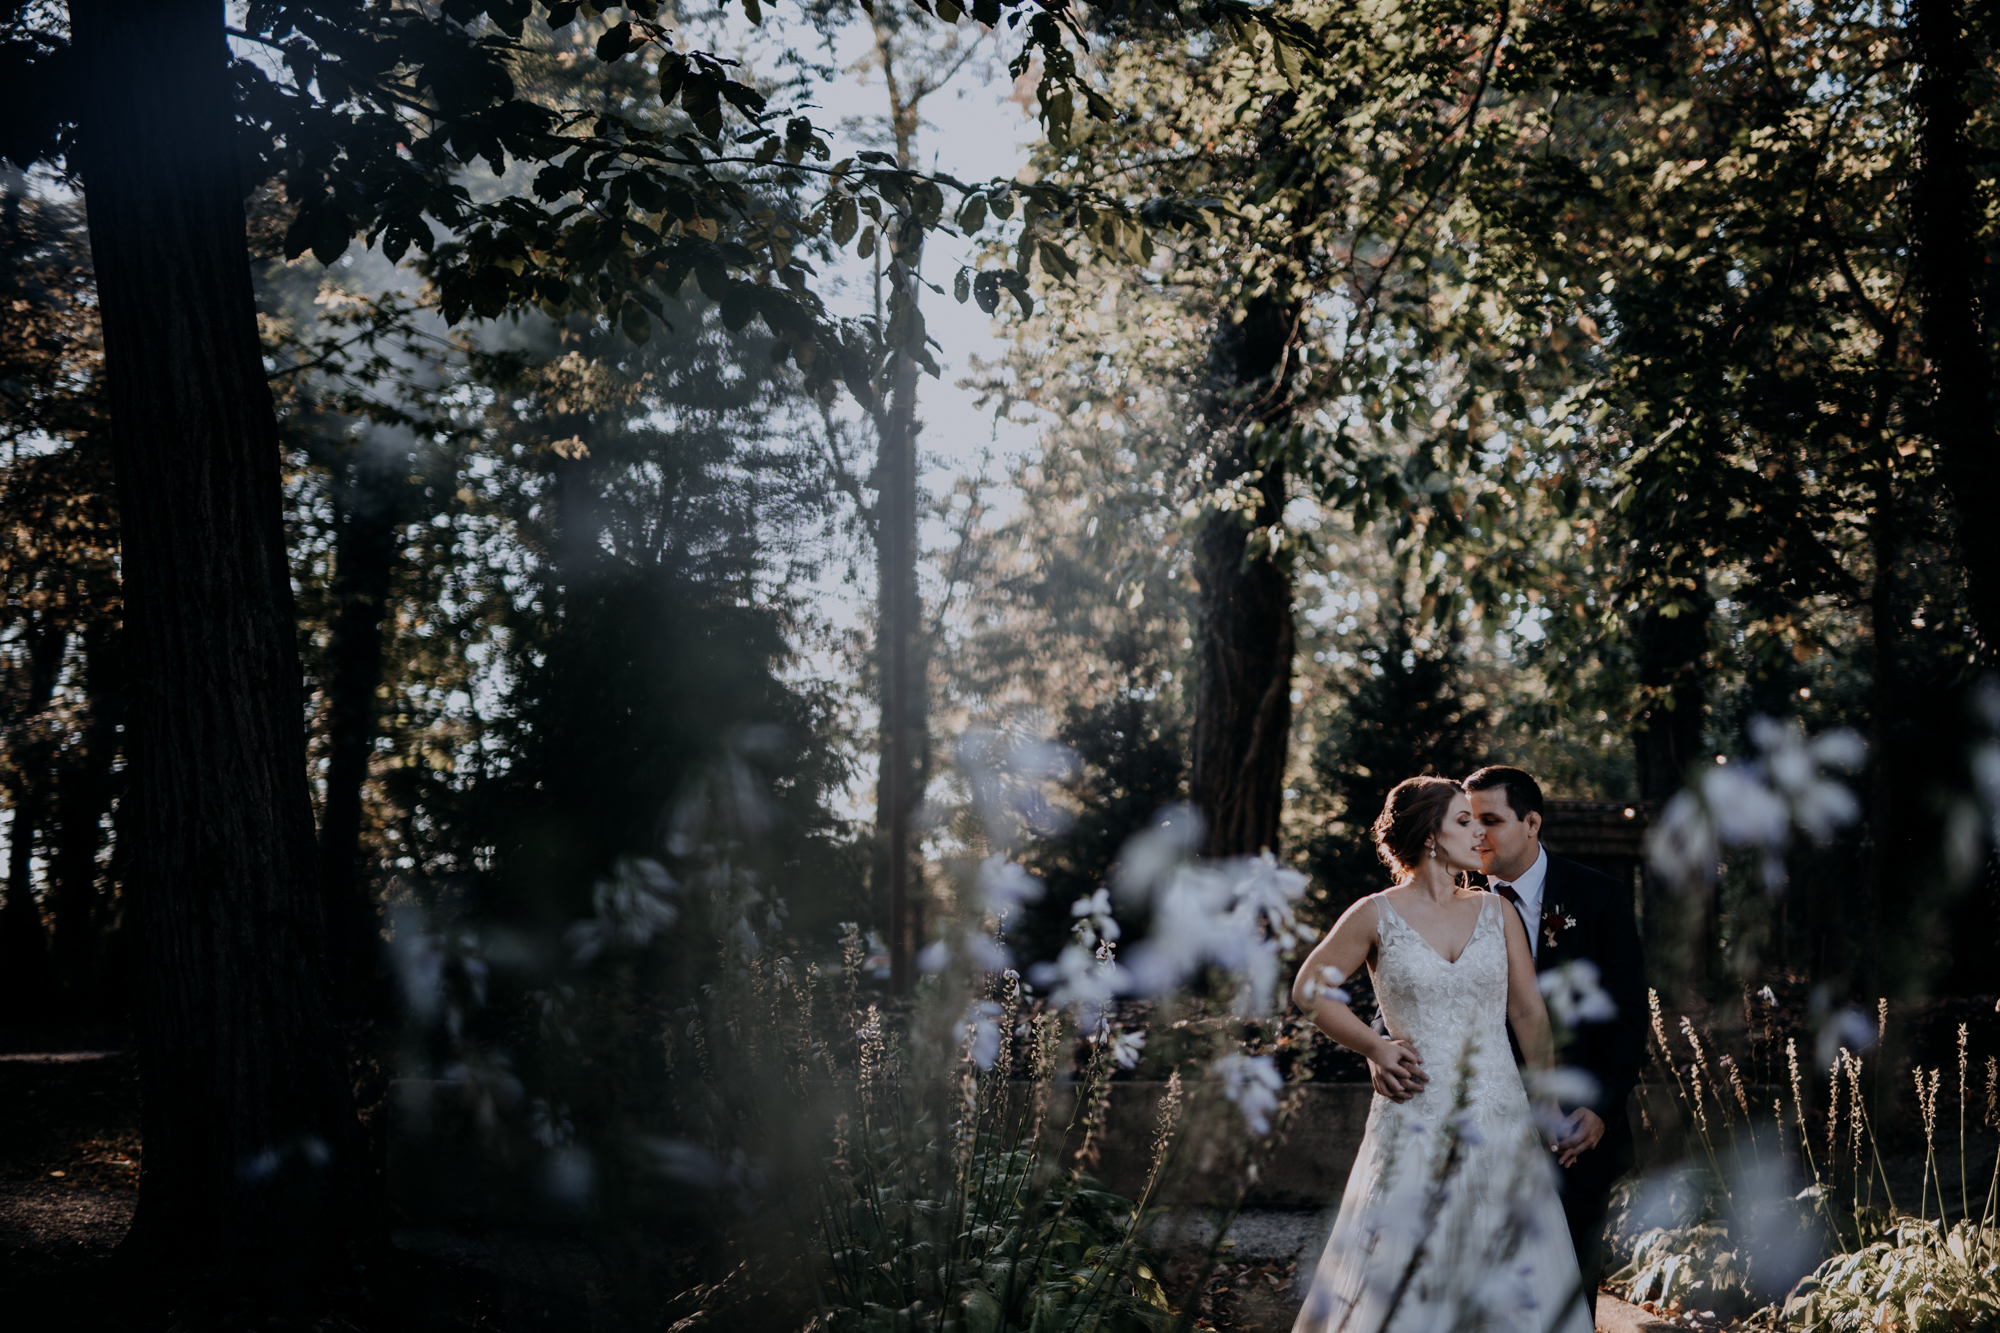 Cambria_Creative_Photographer_Boho_Wedding_Historic_Shady_Lane-5065.jpg